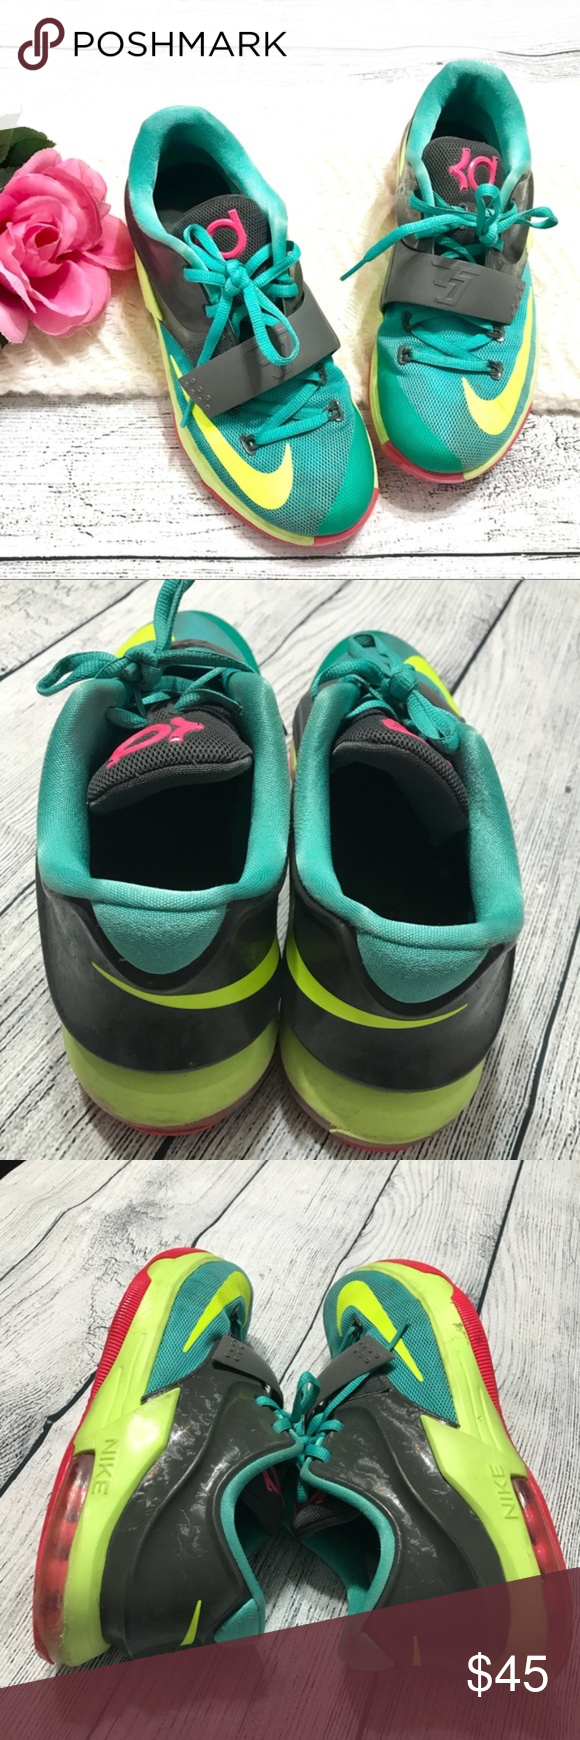 1f0069502e0f7 Nike Youth Teal Rubber Shoes Size 6Y Great pre-loved condition  Size 6Y  24  cm No damage  Item F70 Nike Shoes Sneakers